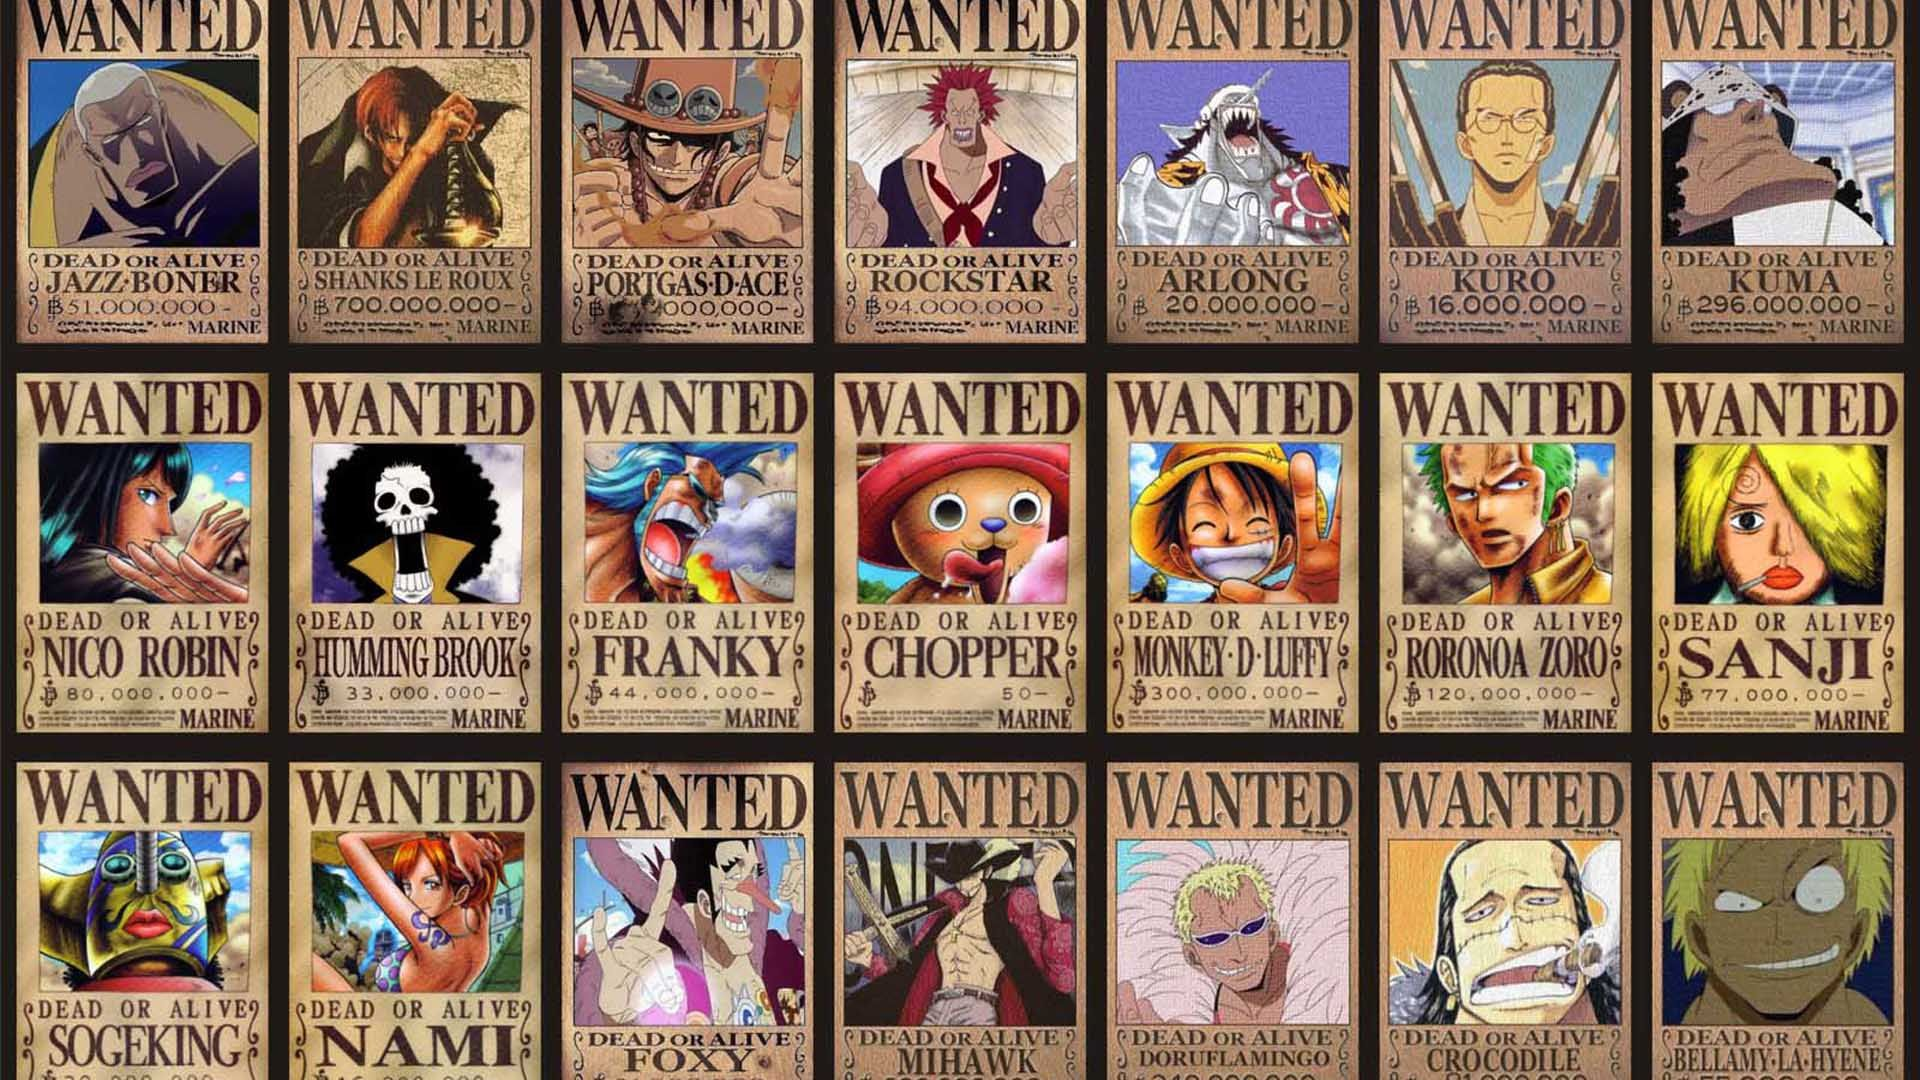 Download One Piece Anime Movie Wanted wallpapers วอลเป